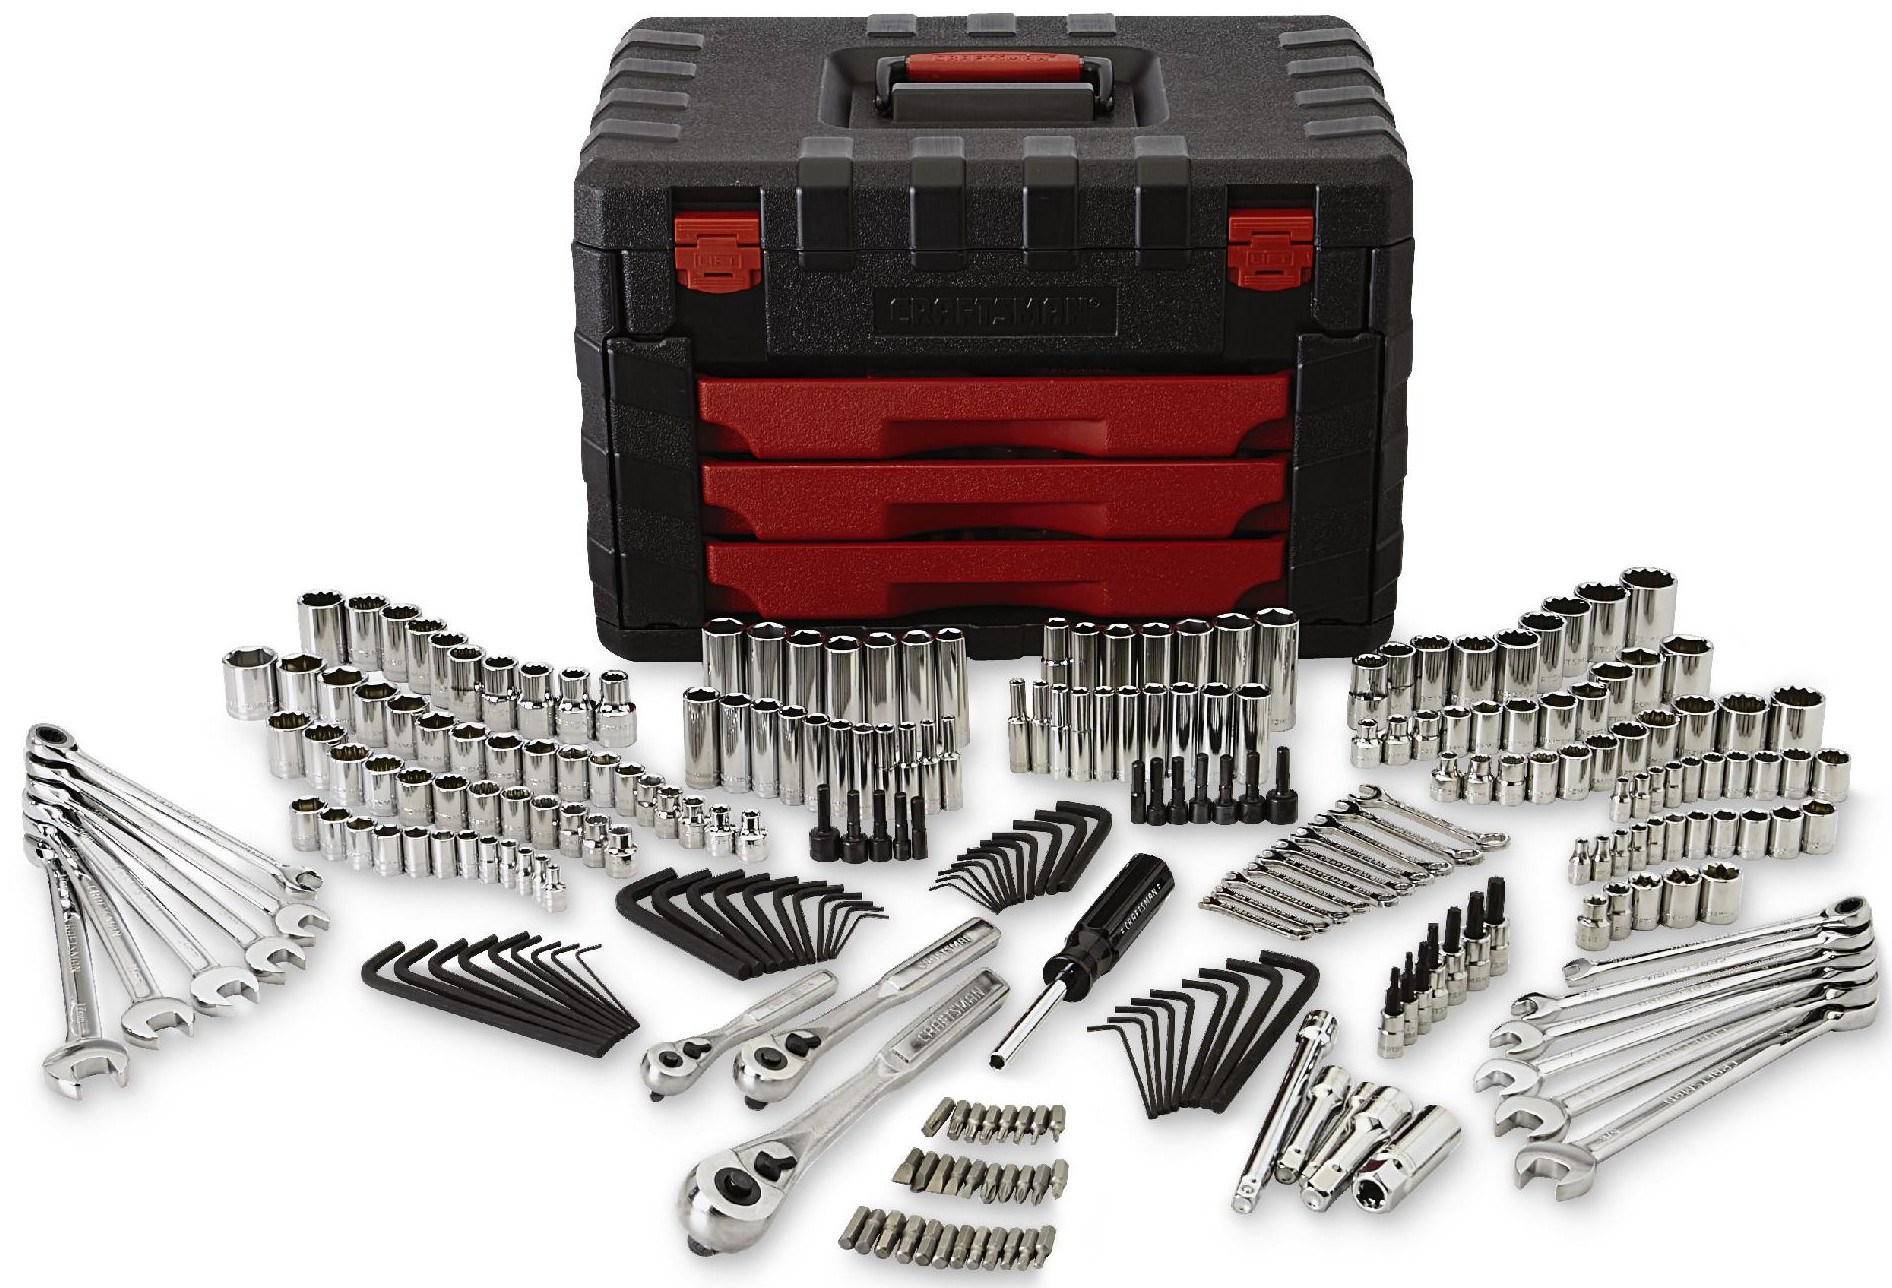 263-pc-mechanics-tool-set-review1